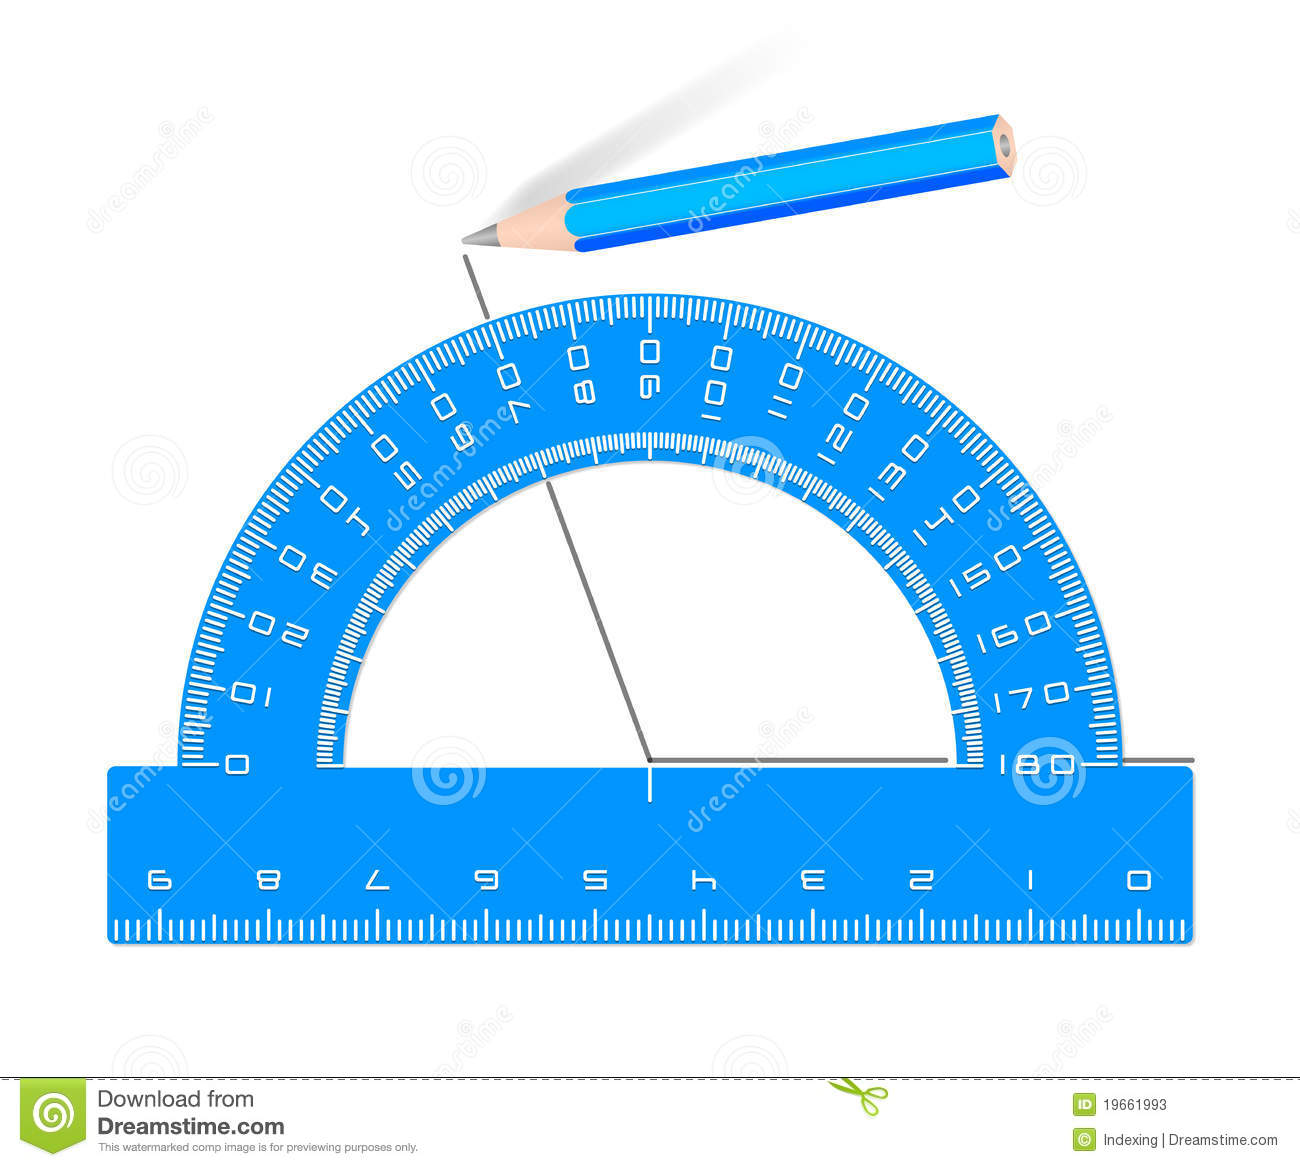 how to use a protractor to draw angles